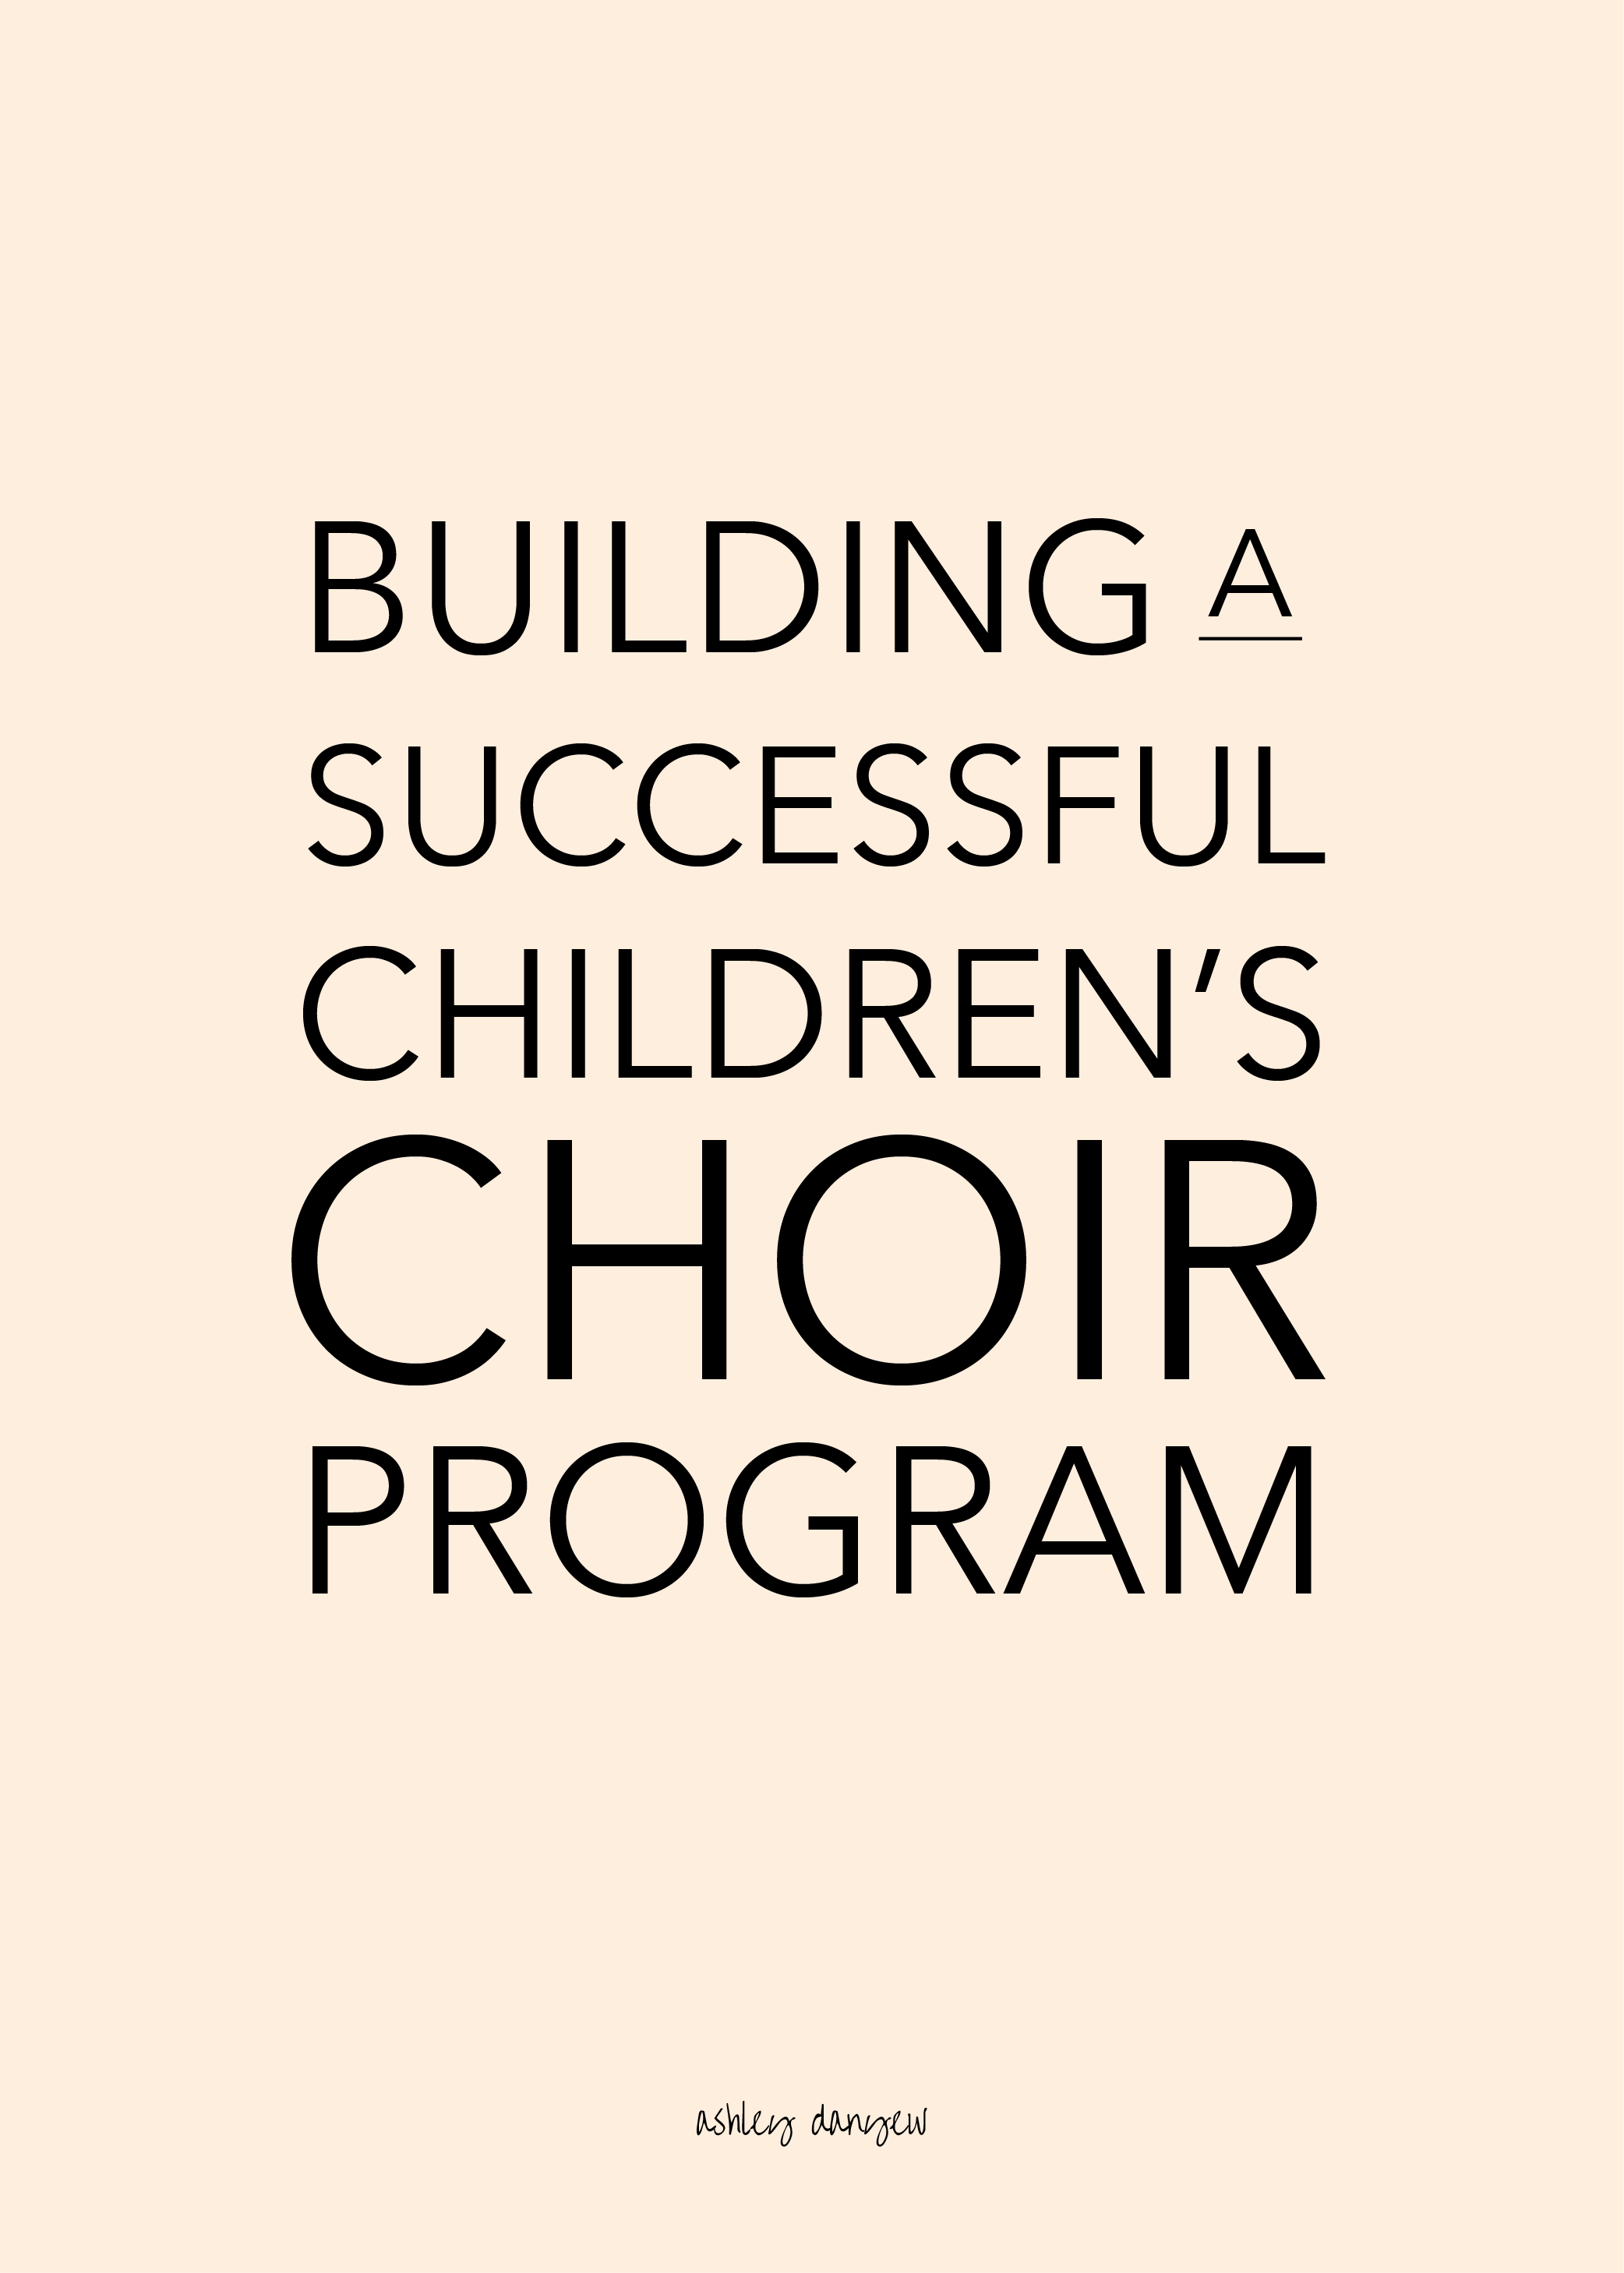 Building a Successful Children's Choir Program.png